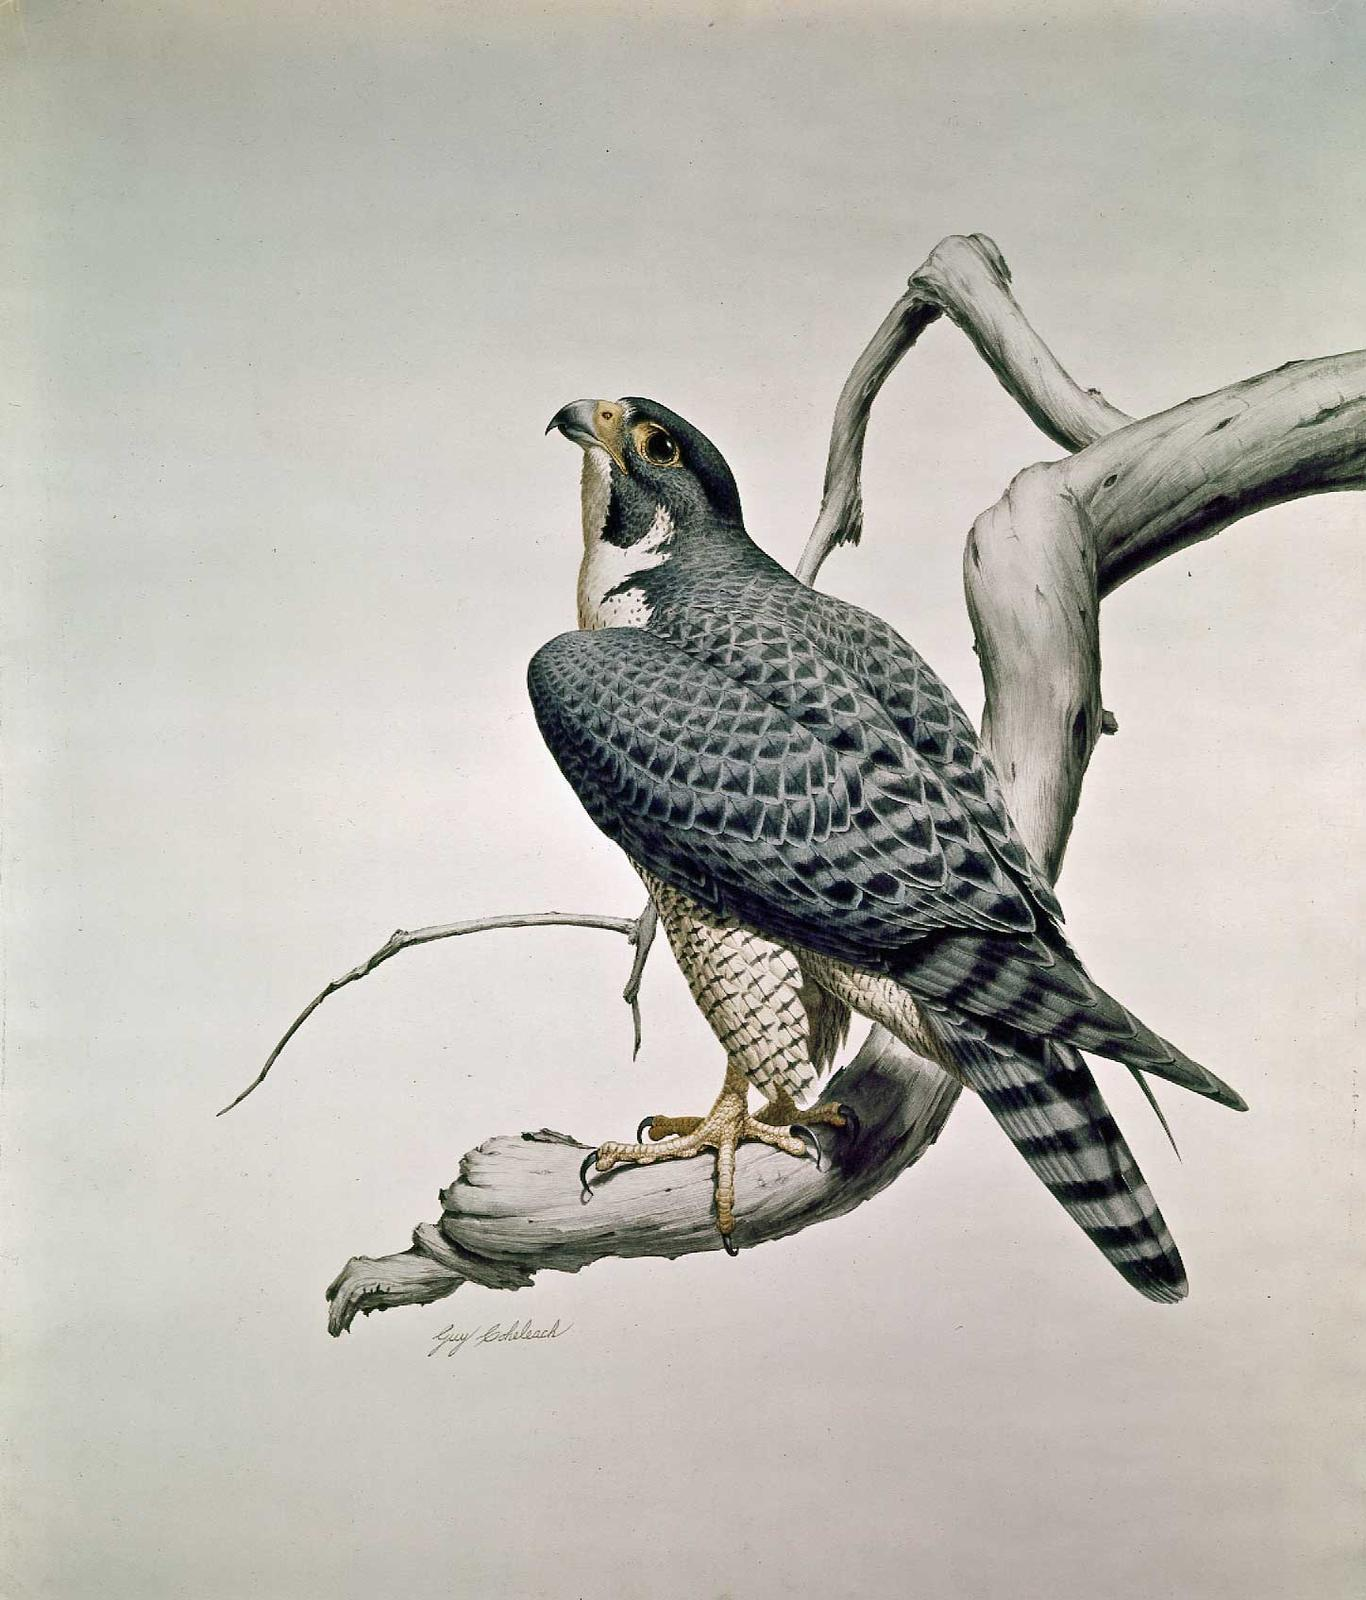 """Peregrine Falcon""  -  32"" x 27"" ""Peregrine Falcon""  Birds of Prey  Raptors"